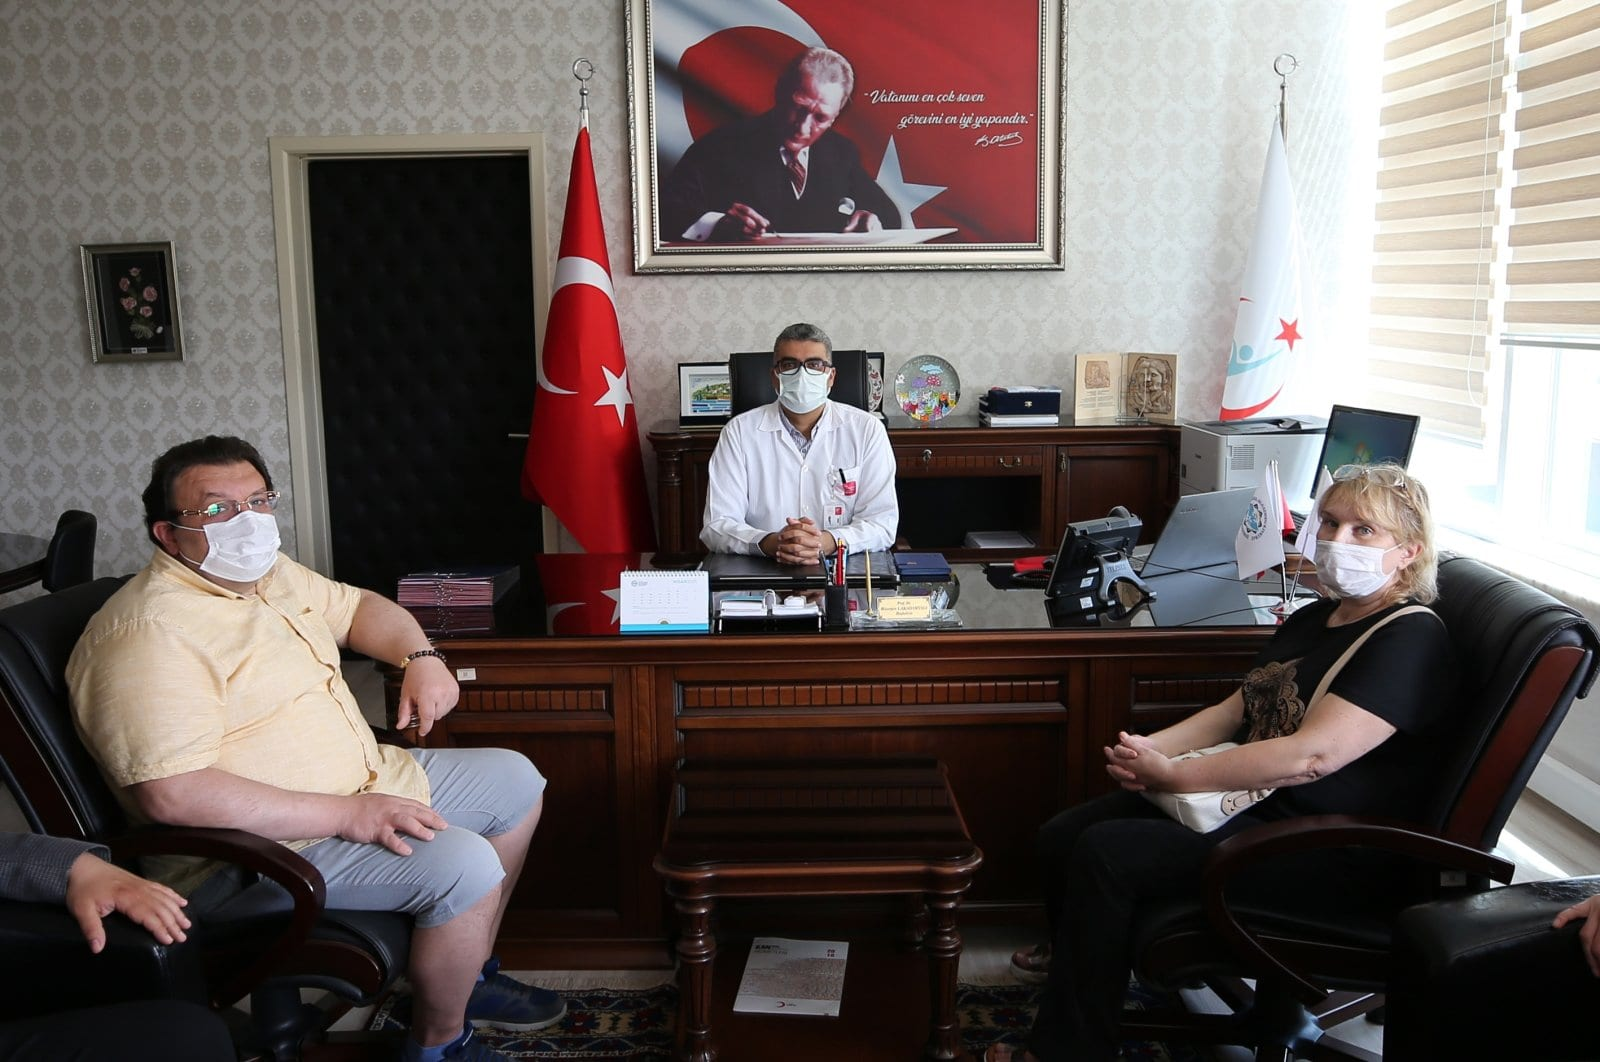 Foreign residents recovered from COVID-19 compliments health care system in Turkey